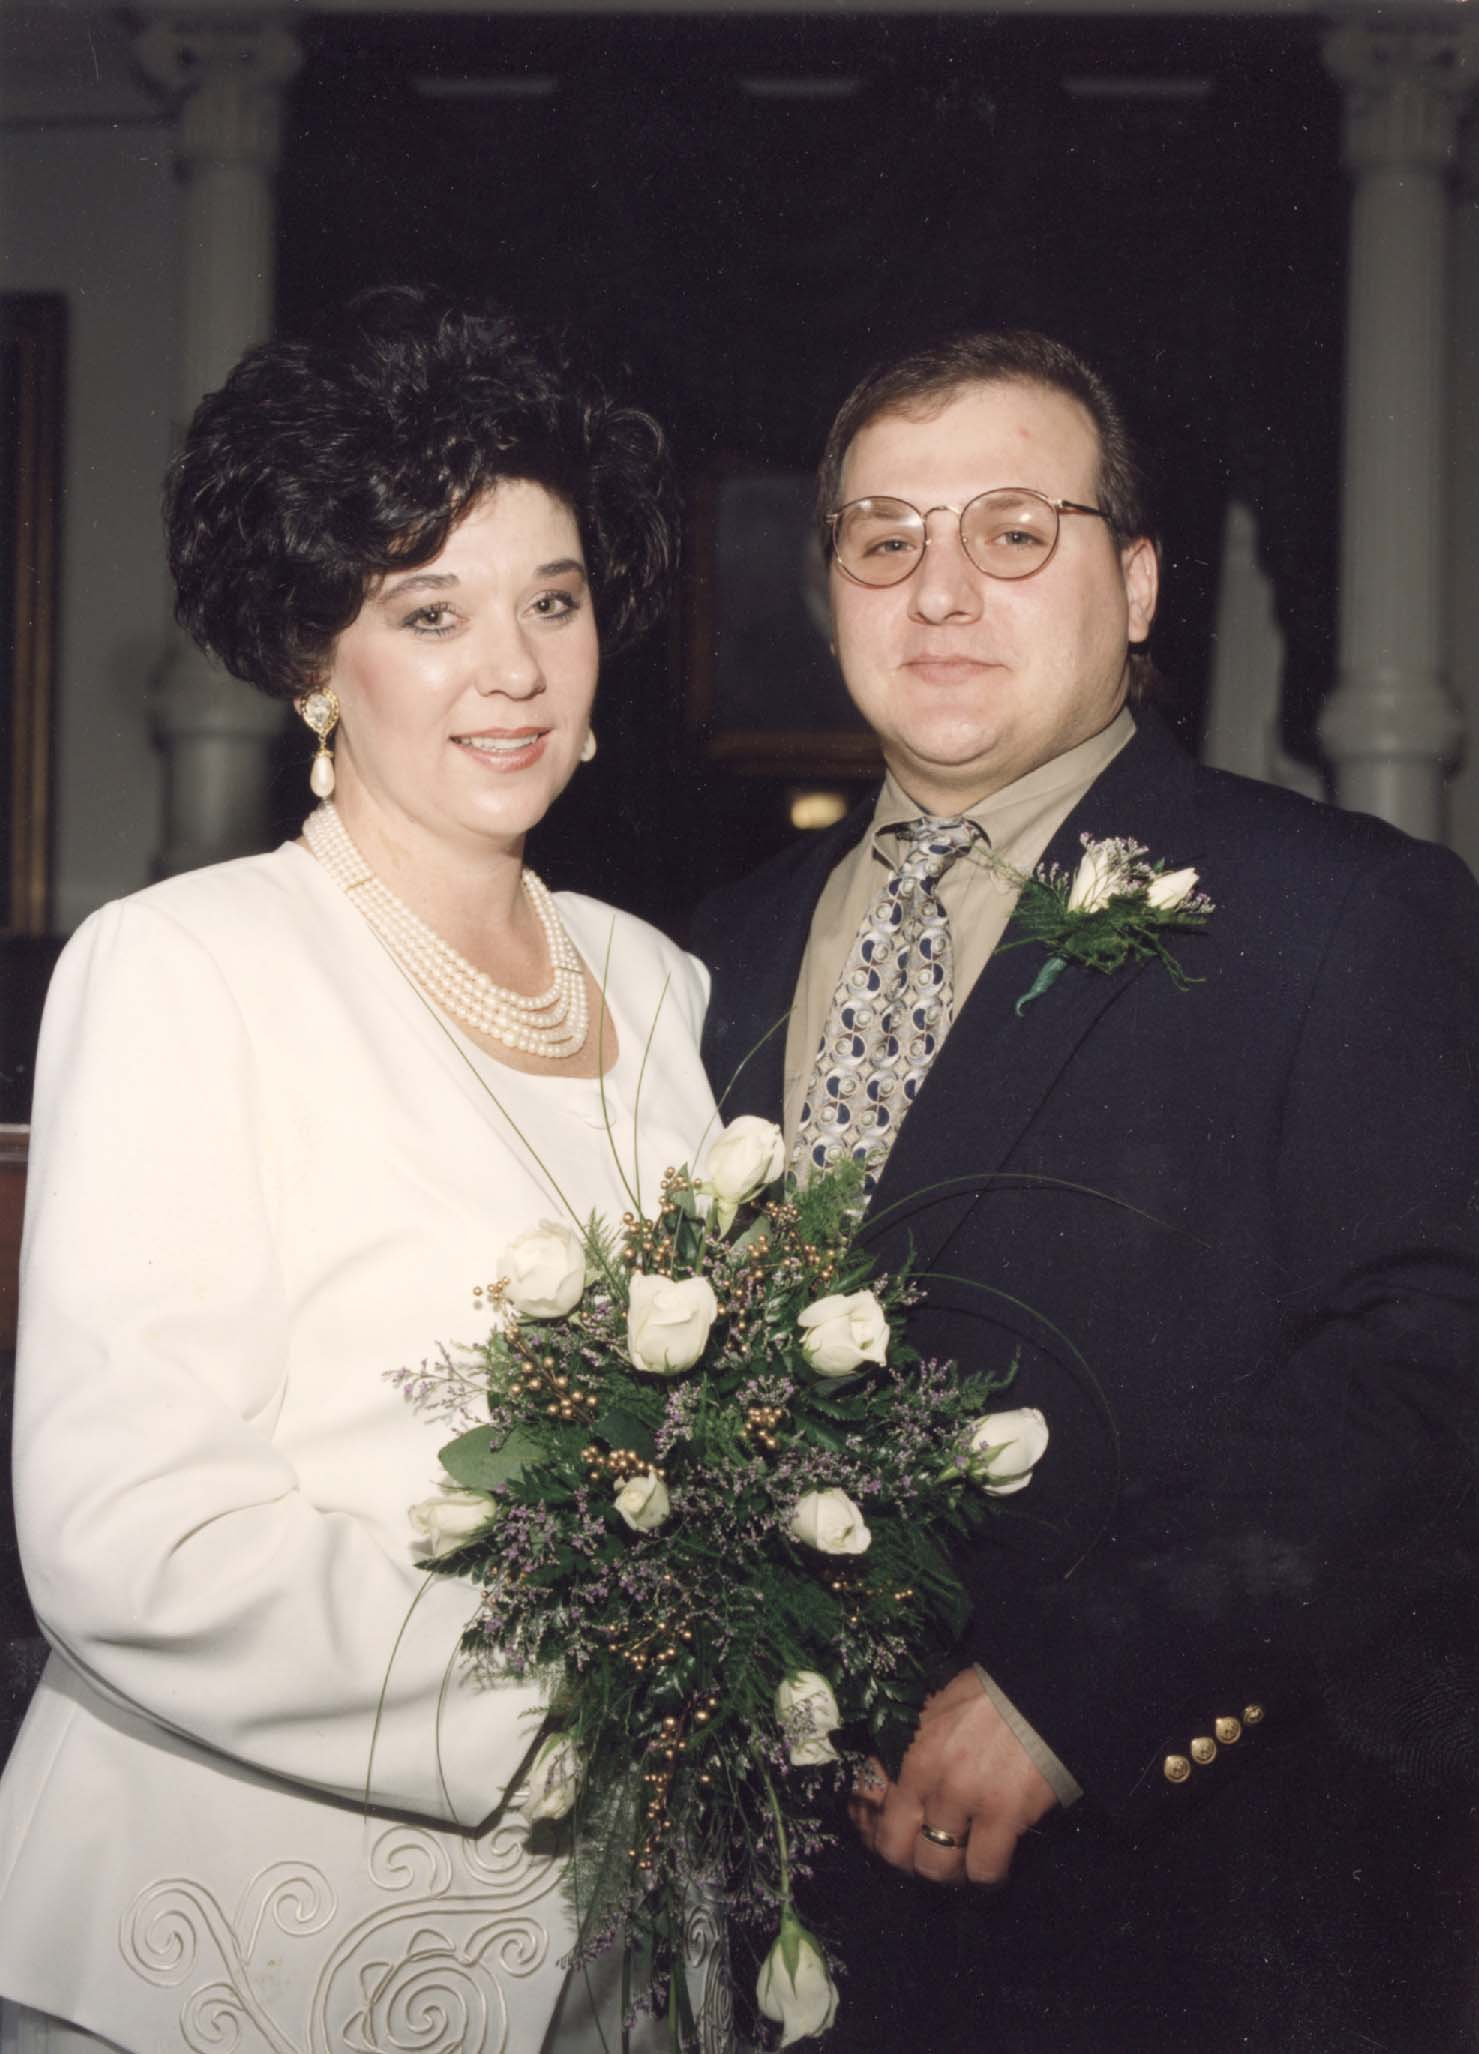 Tina and James in the Texas State Capitol Senate Chambers in Austin, Texas, on their wedding day, November 10, 1995.